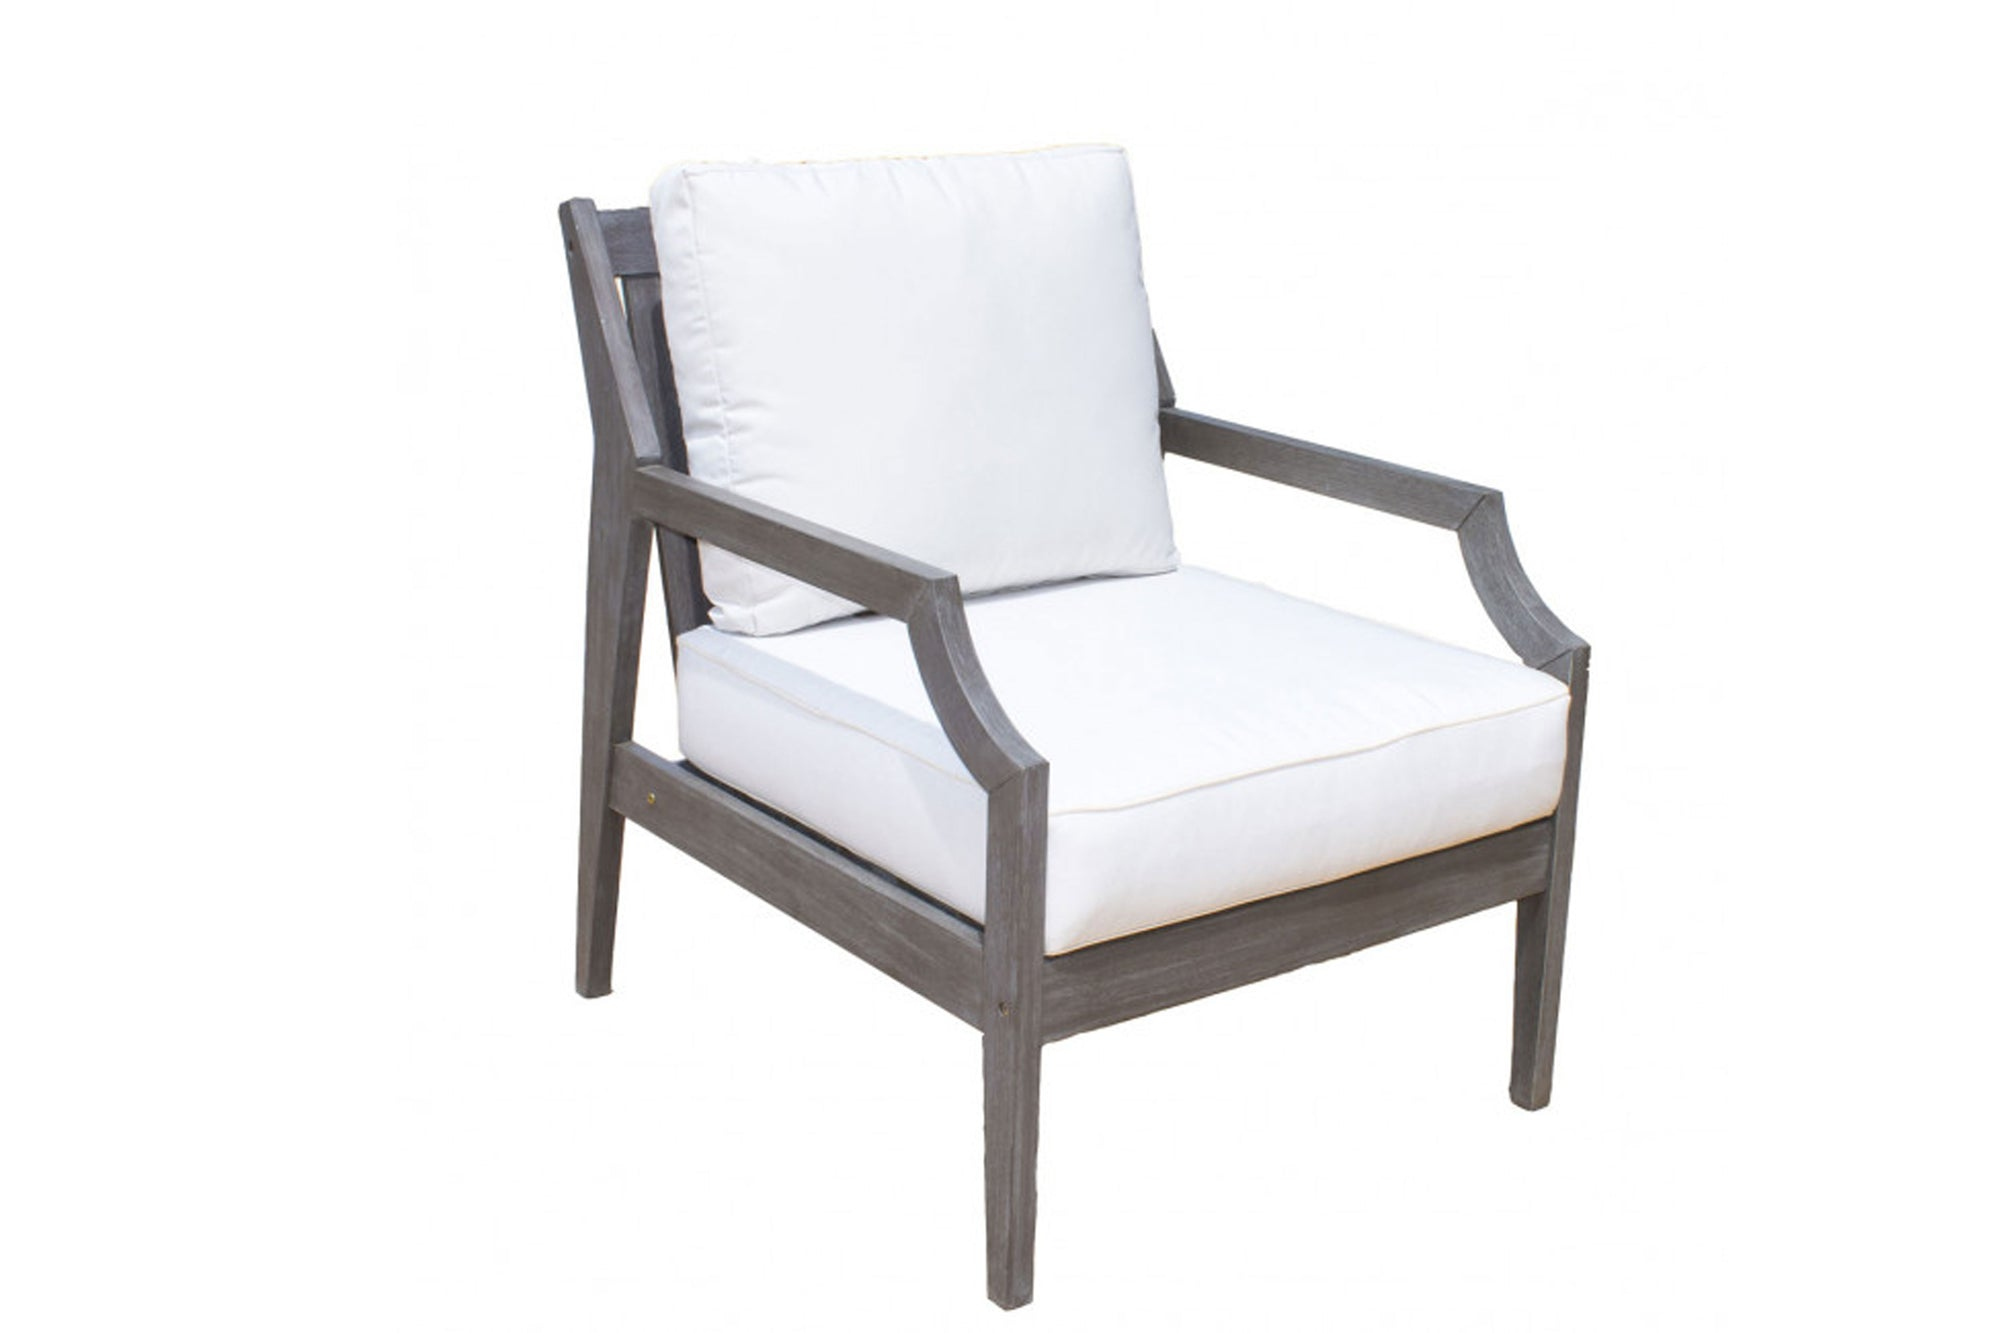 Poolside Lounge Chair w/off-white cushion